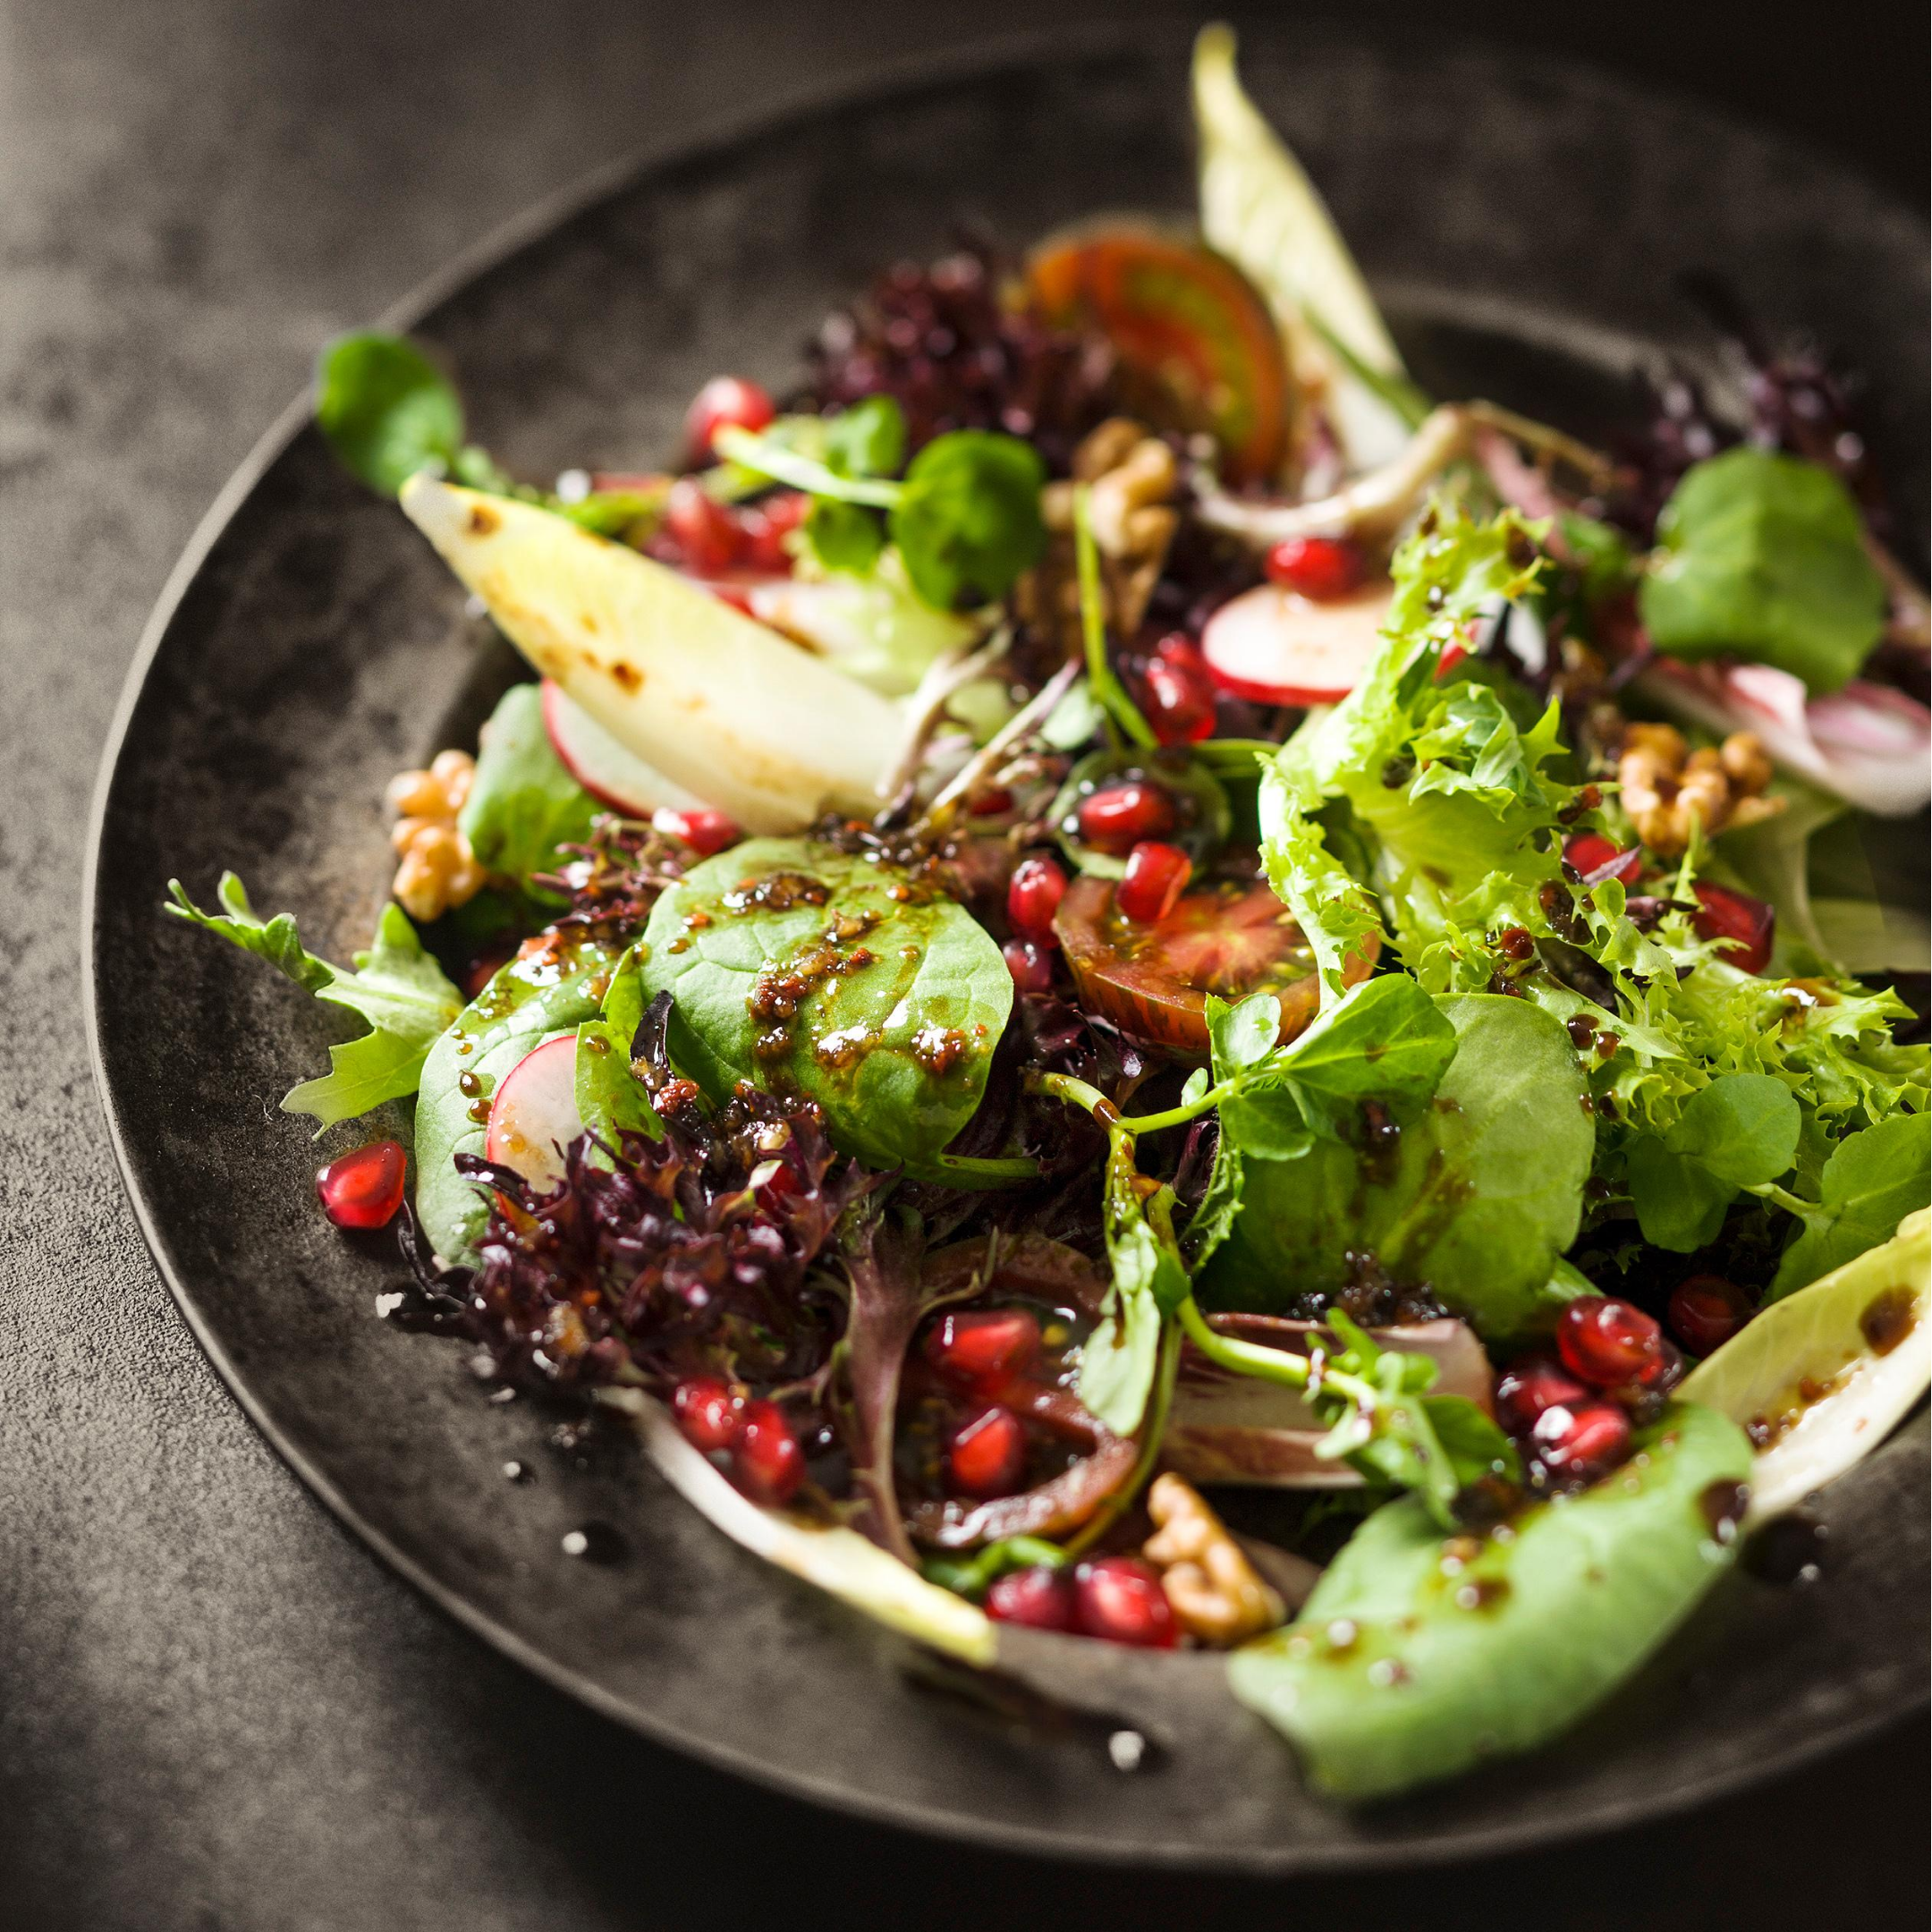 Pomegranate and Walnut Salad Recipe